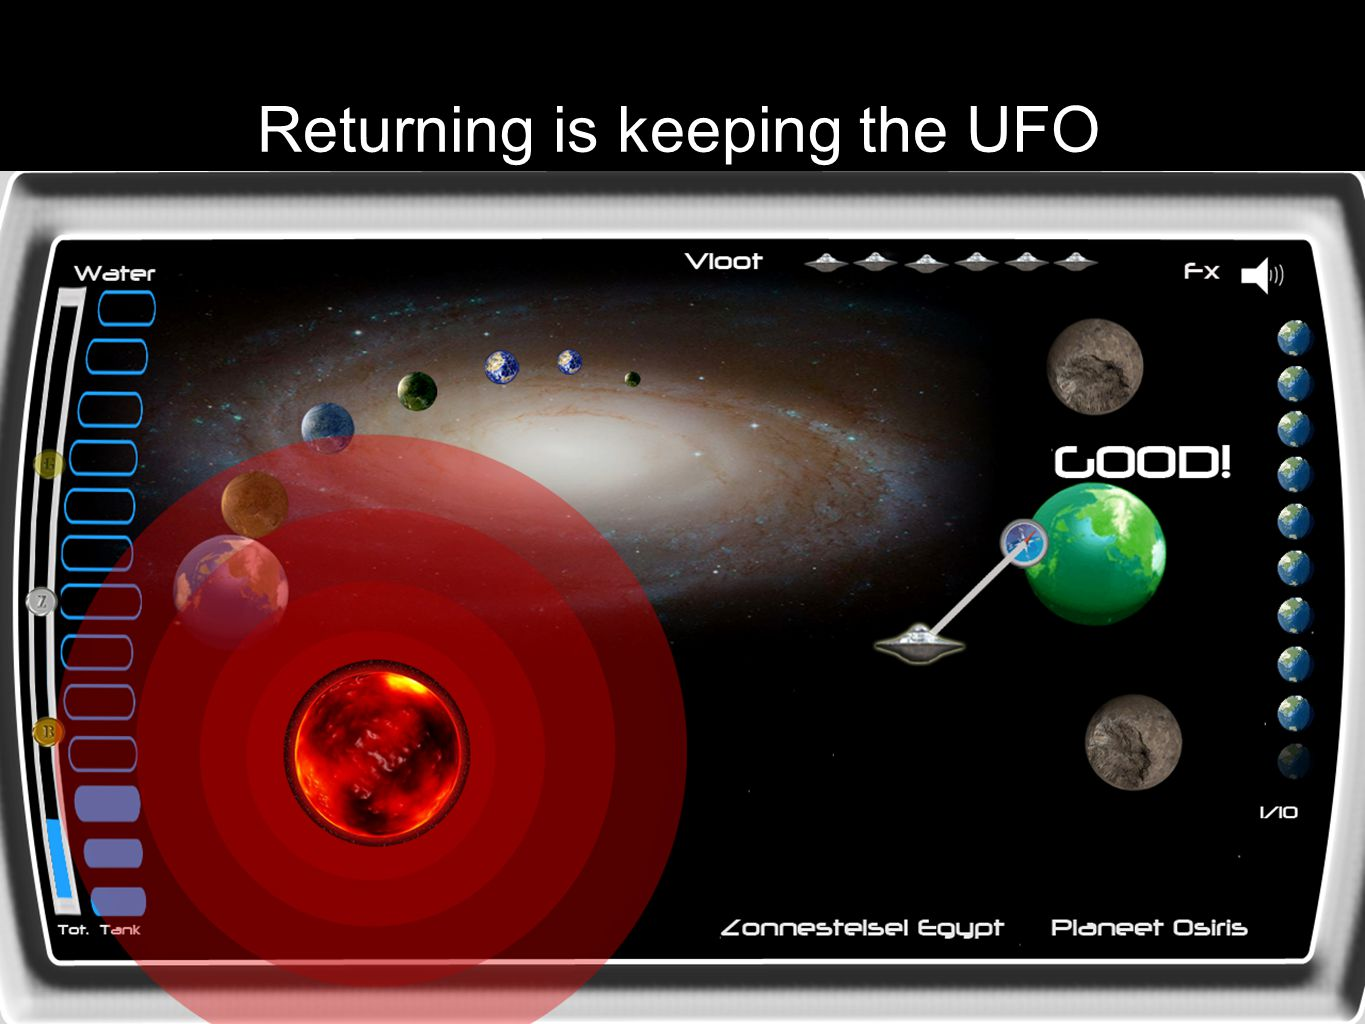 Returning is keeping the UFO